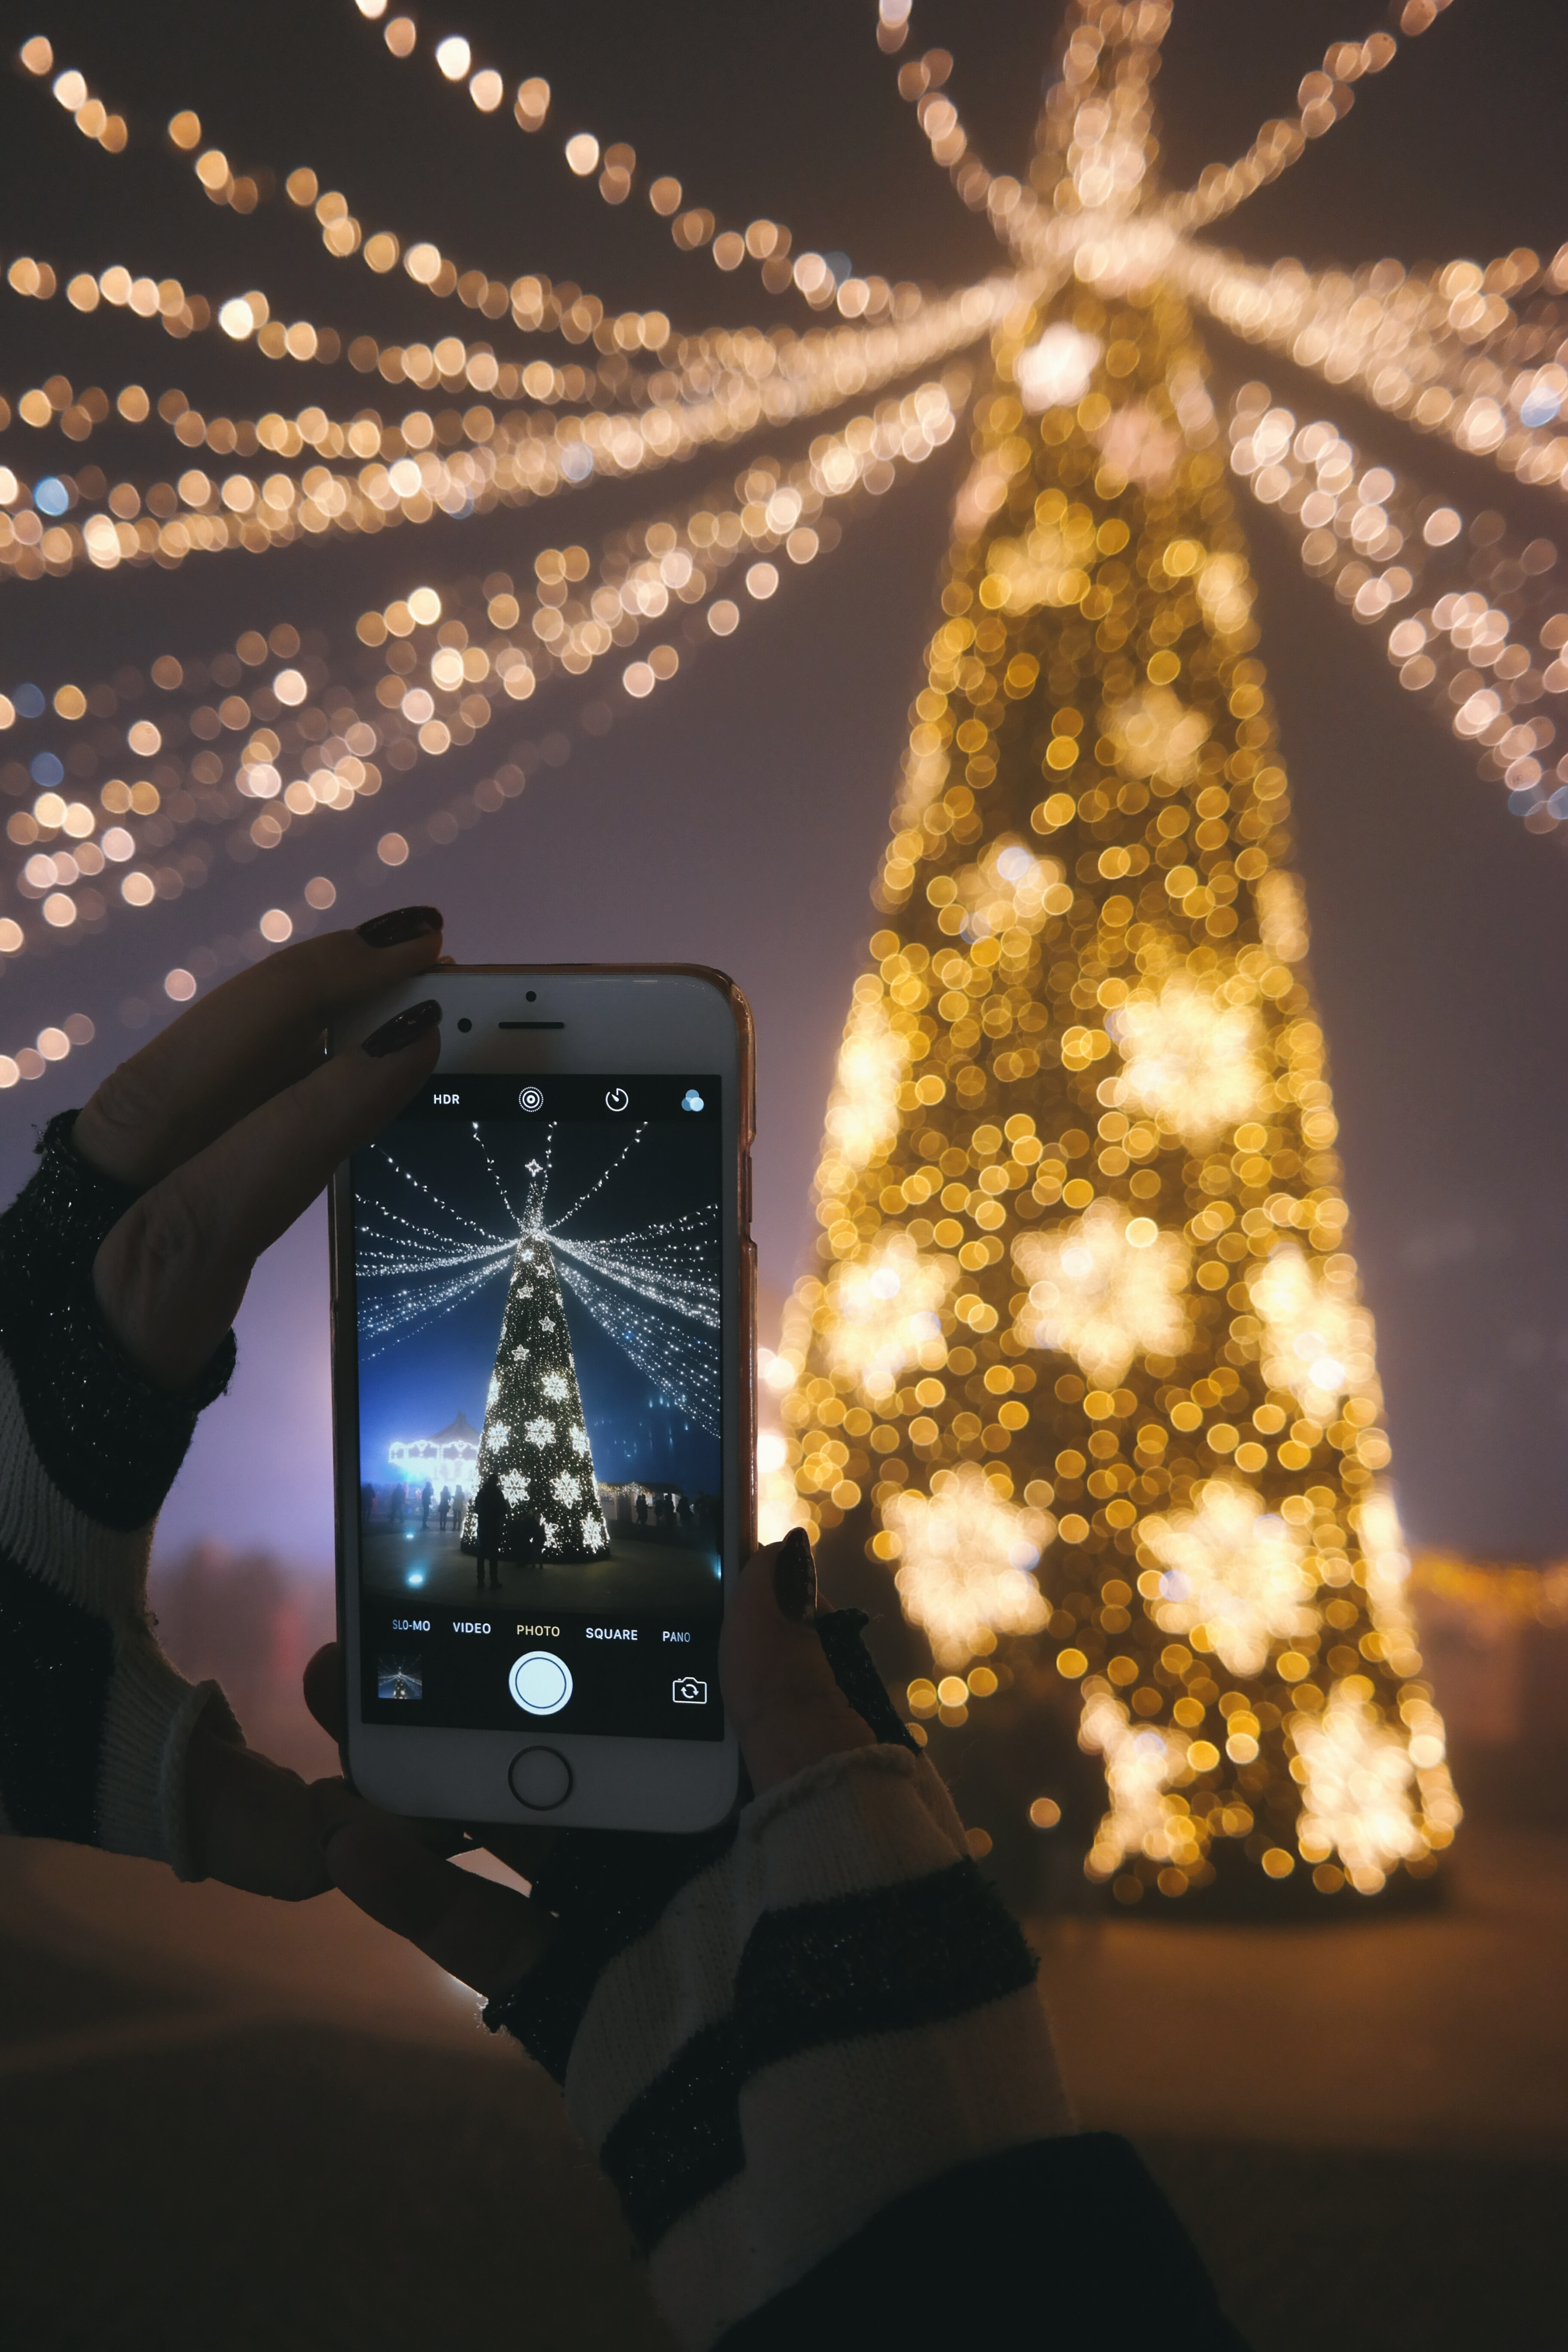 Person Holding Iphone 6 Taking Photo Of Christmas Tree